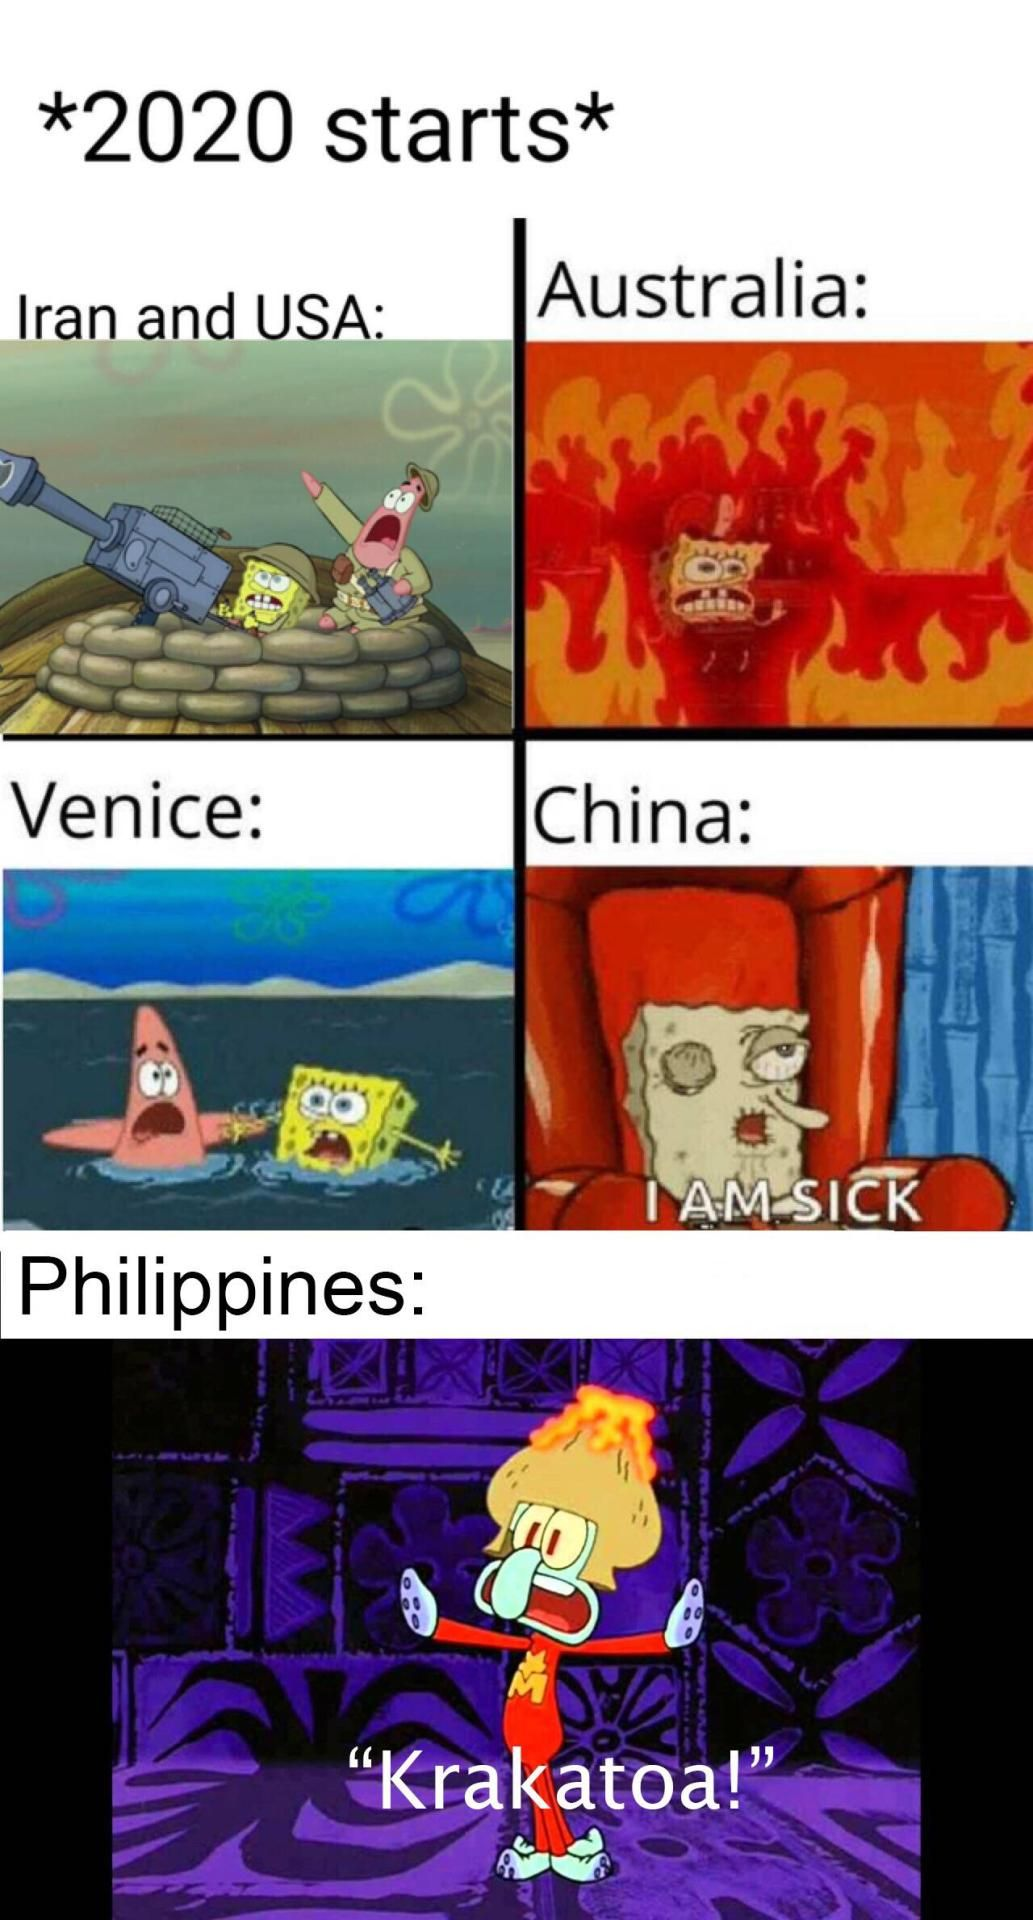 Krakatoa 2020 Australia China Iran USA spongebob meme in